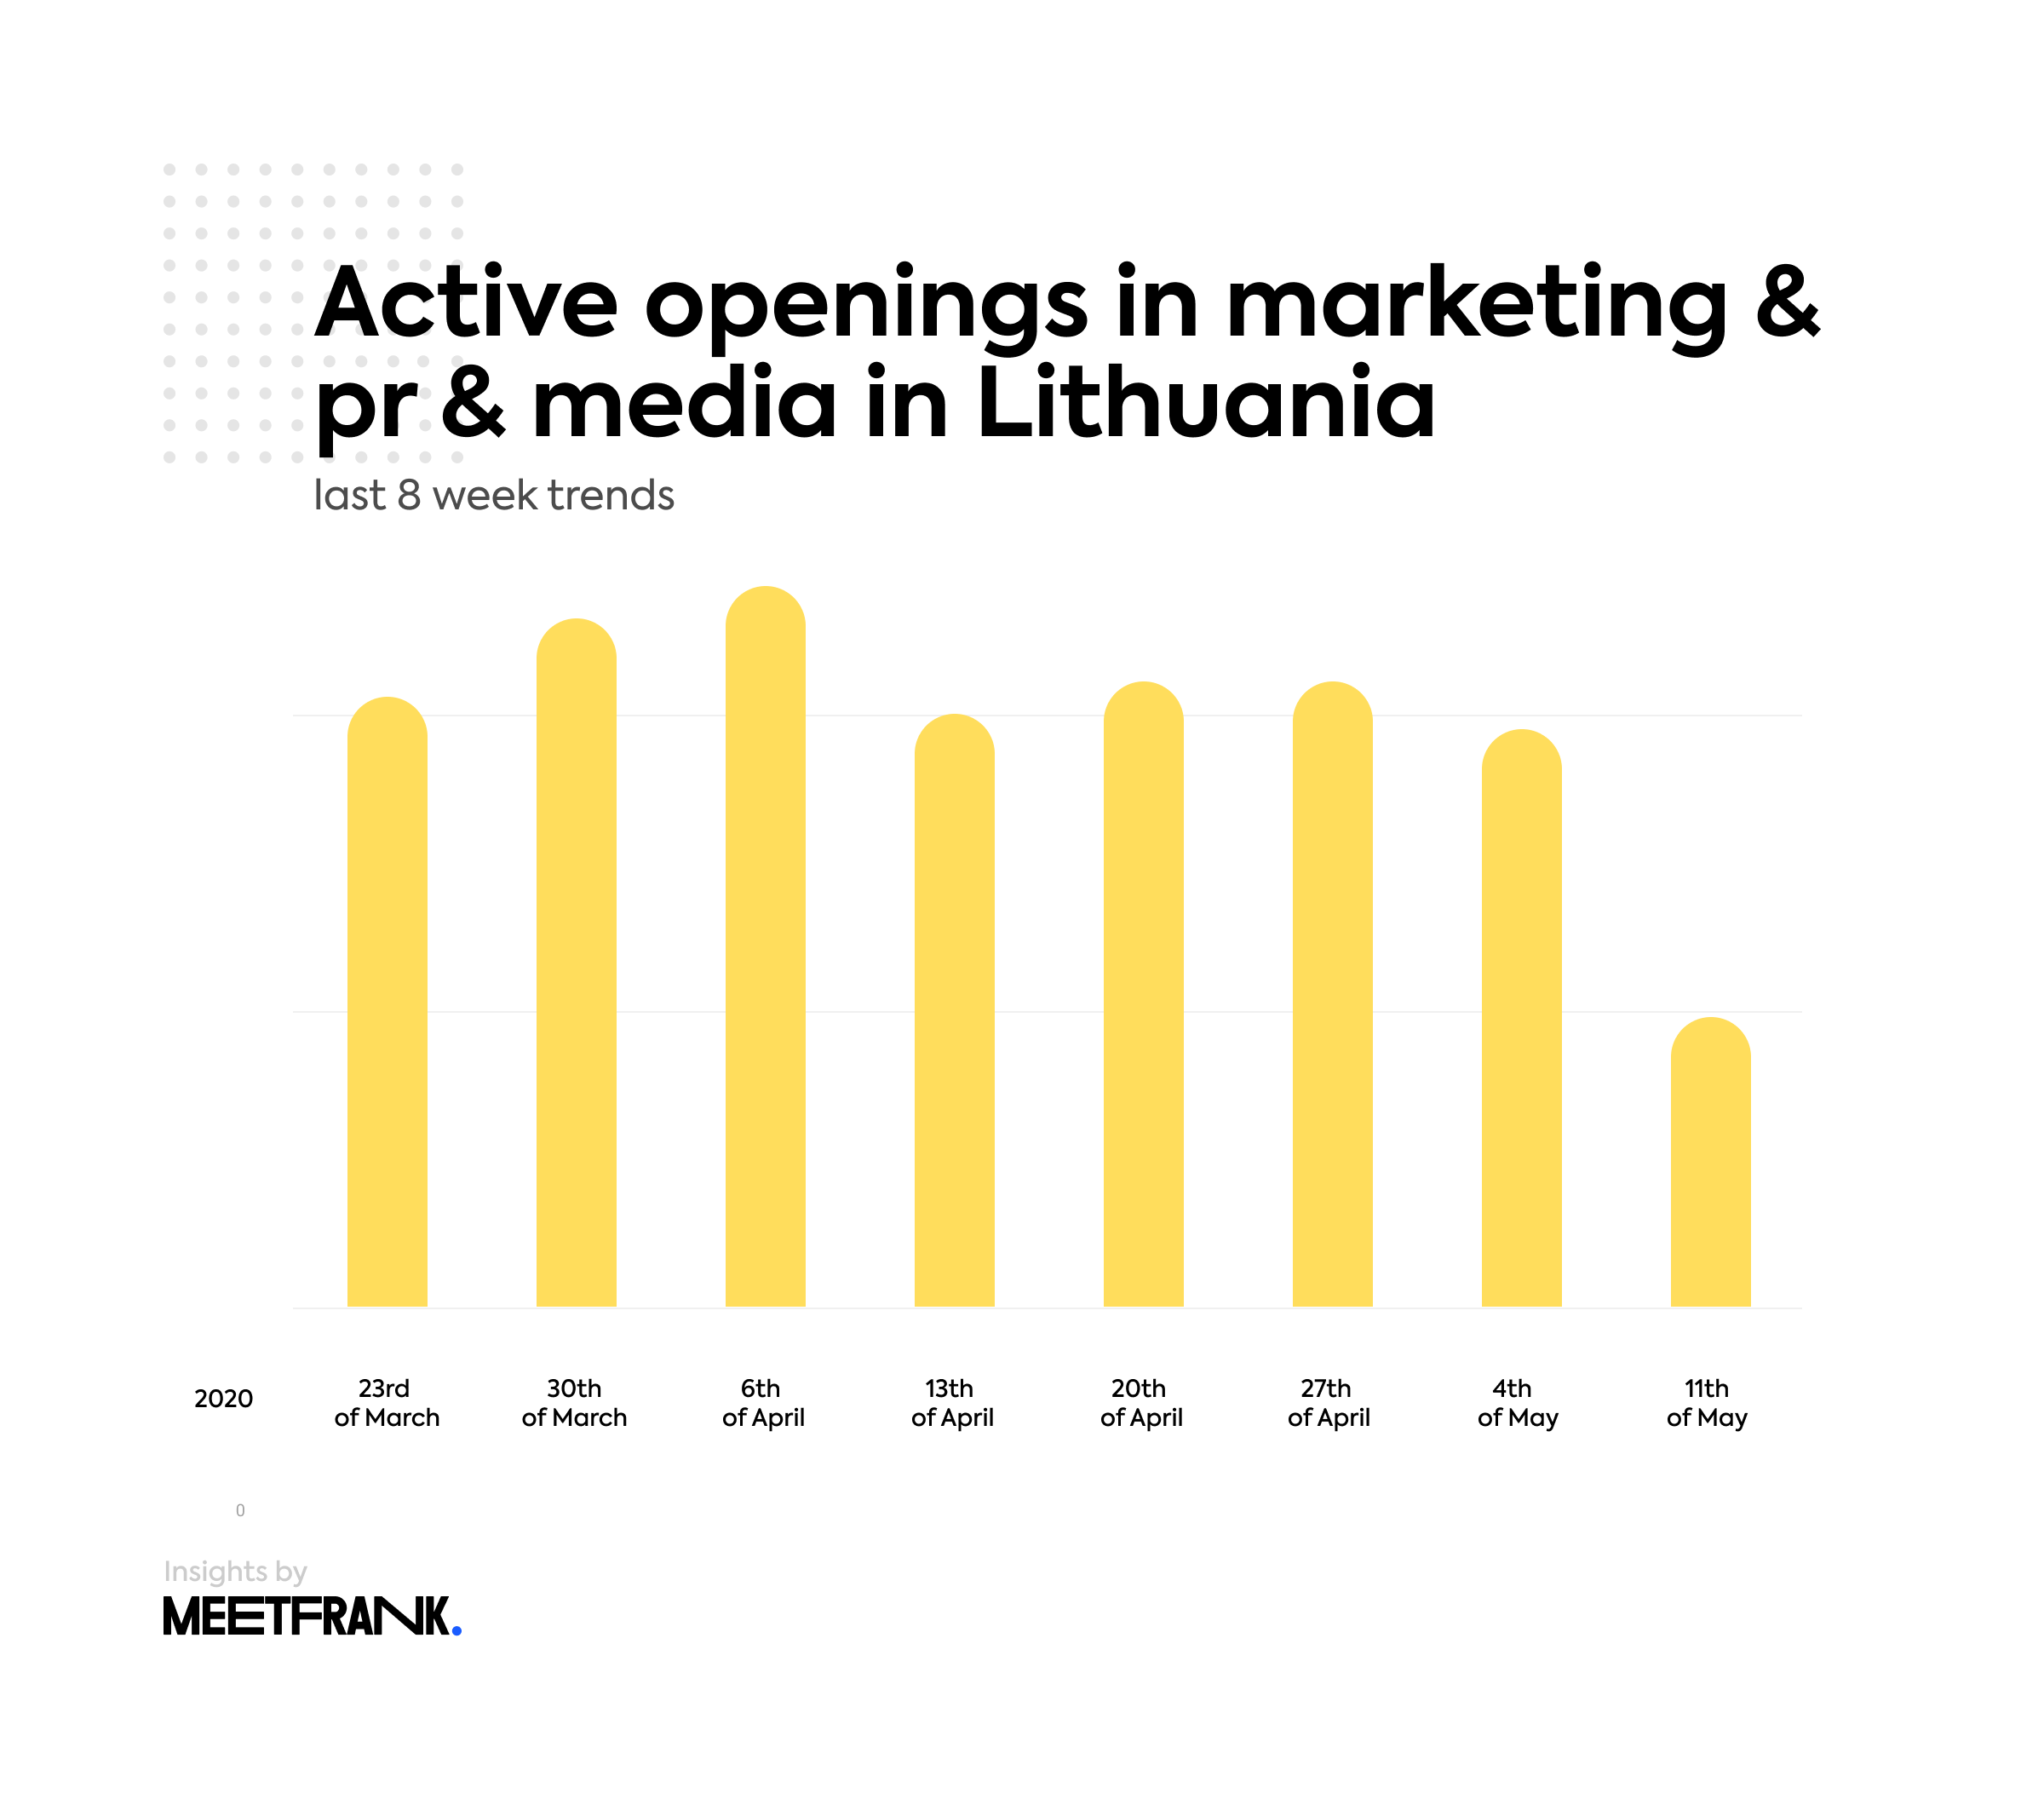 active openings in marketing & pr & media in Lithuania